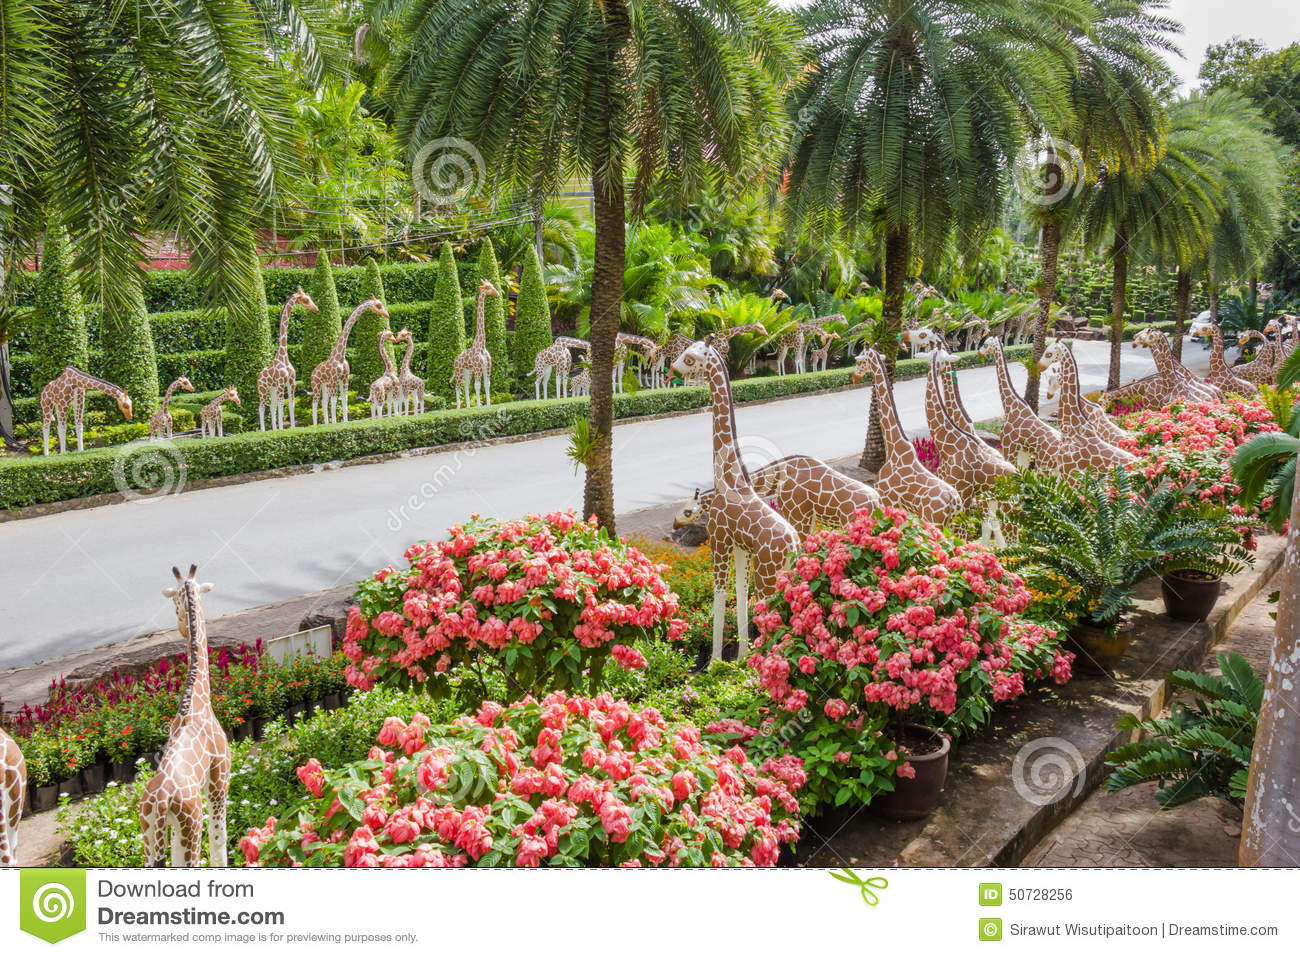 the synthetic giraffe as garden decoration in nong nooch tropical